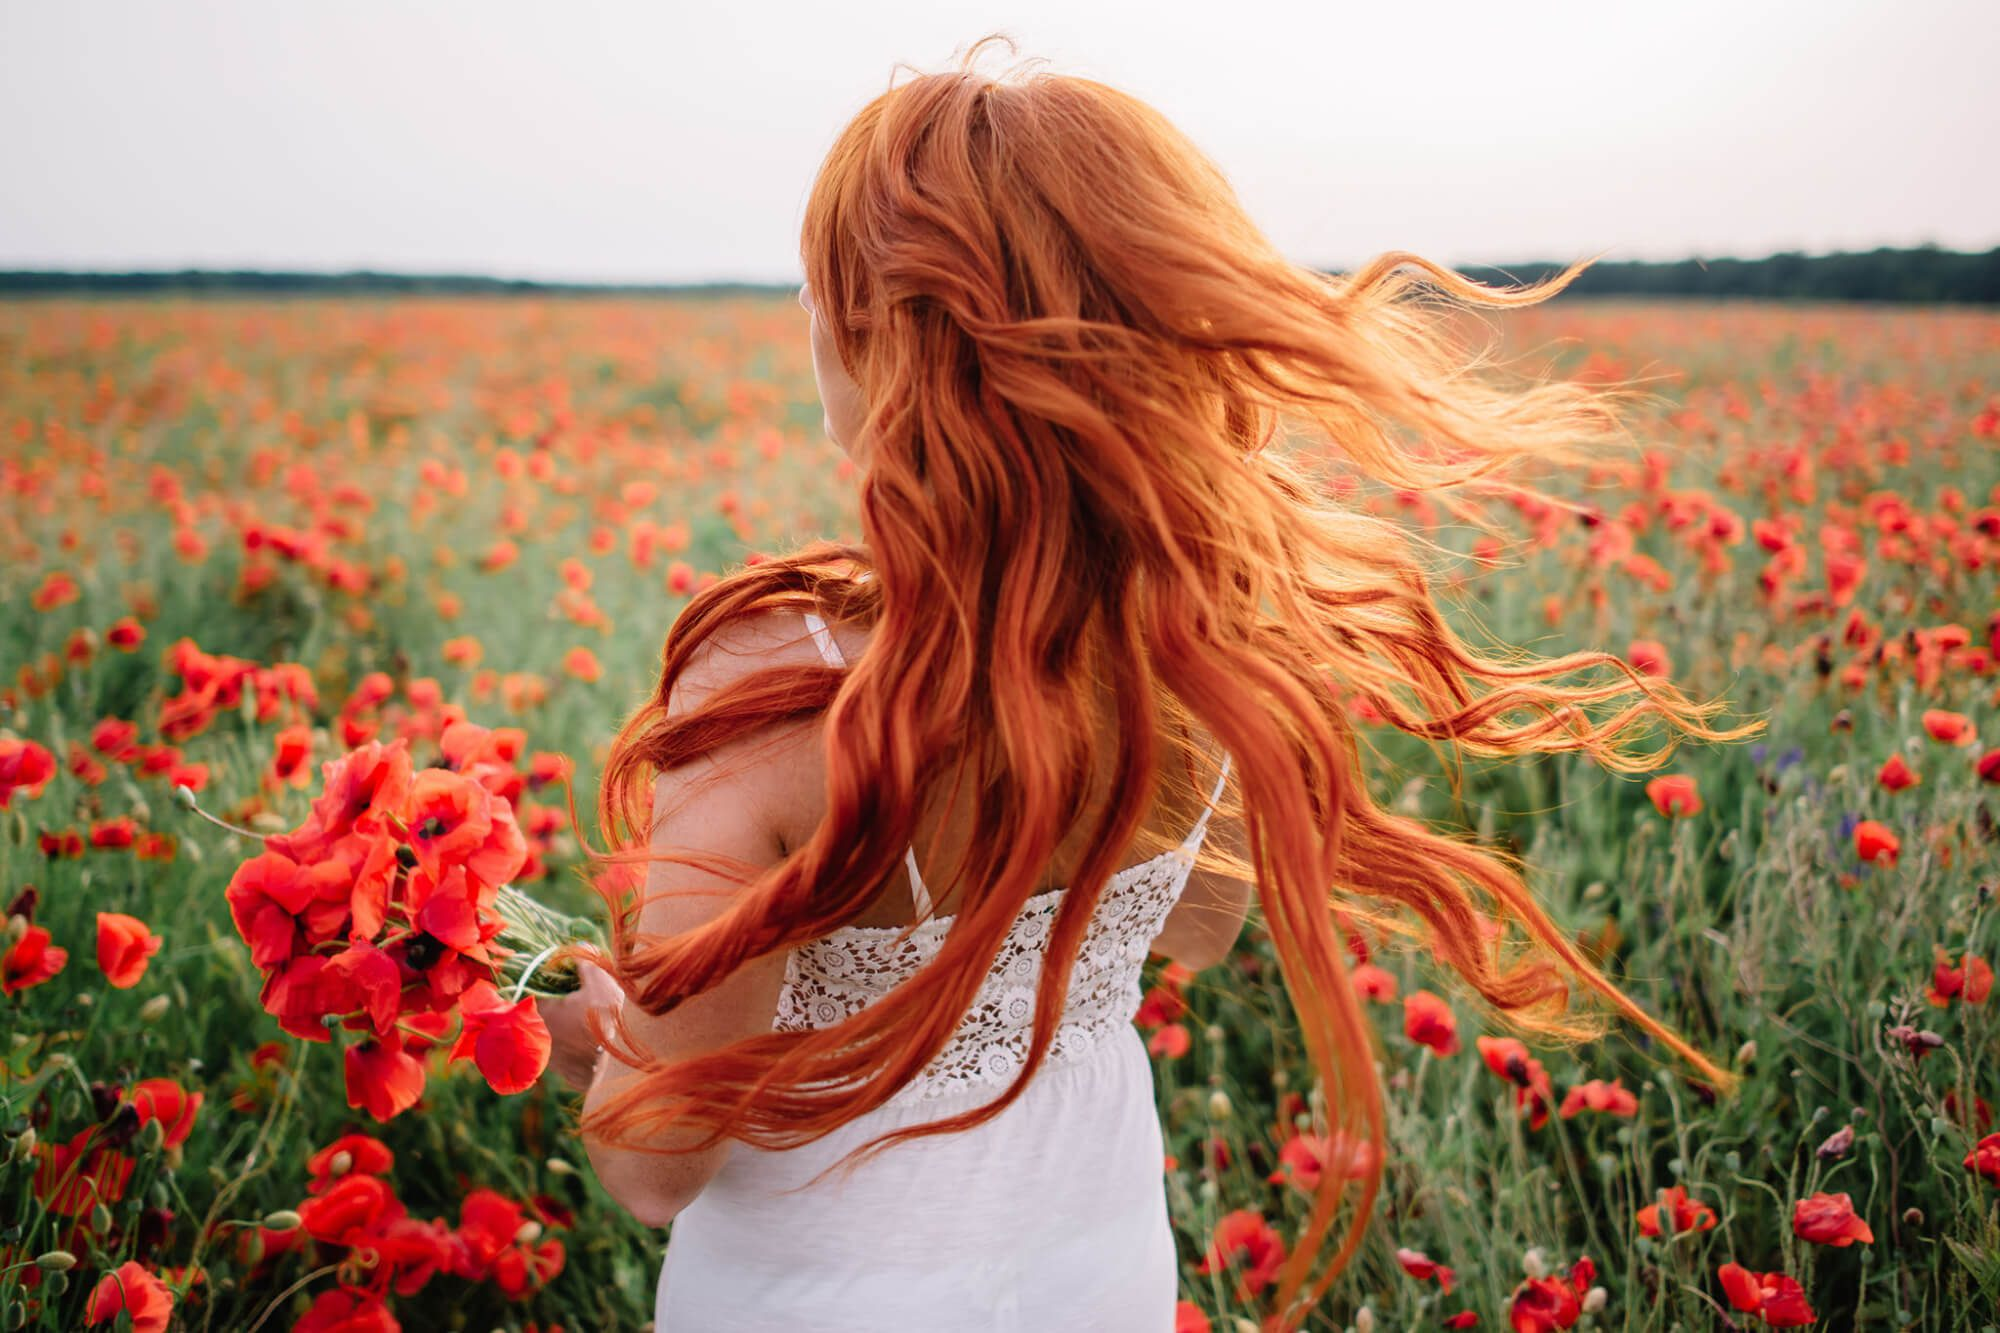 Sunday Salon: Beautiful young red-haired woman in poppy field with flying hair.